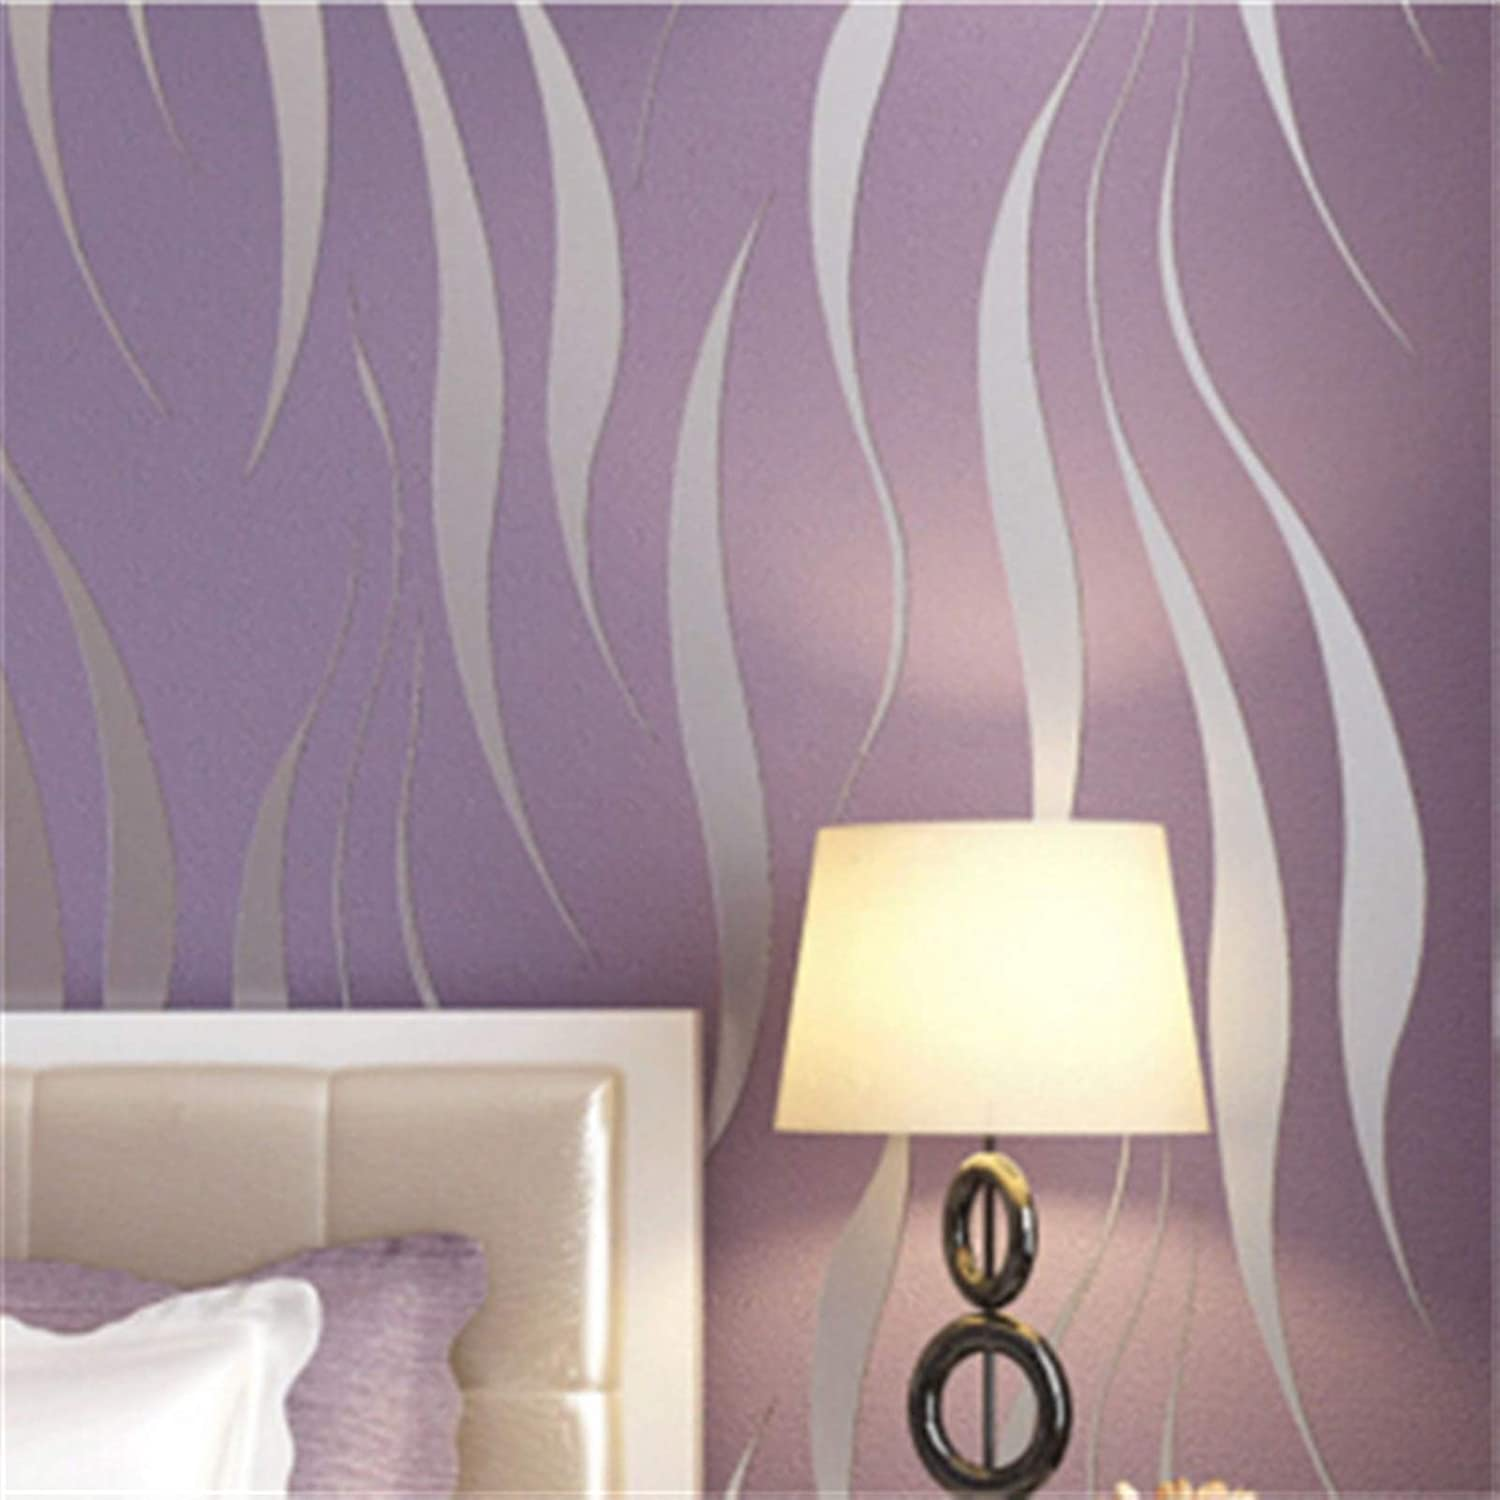 JFIA65A Modern Max 59% OFF Non Online limited product Woven Wallpaper Geometric Stripes Hom Flocked